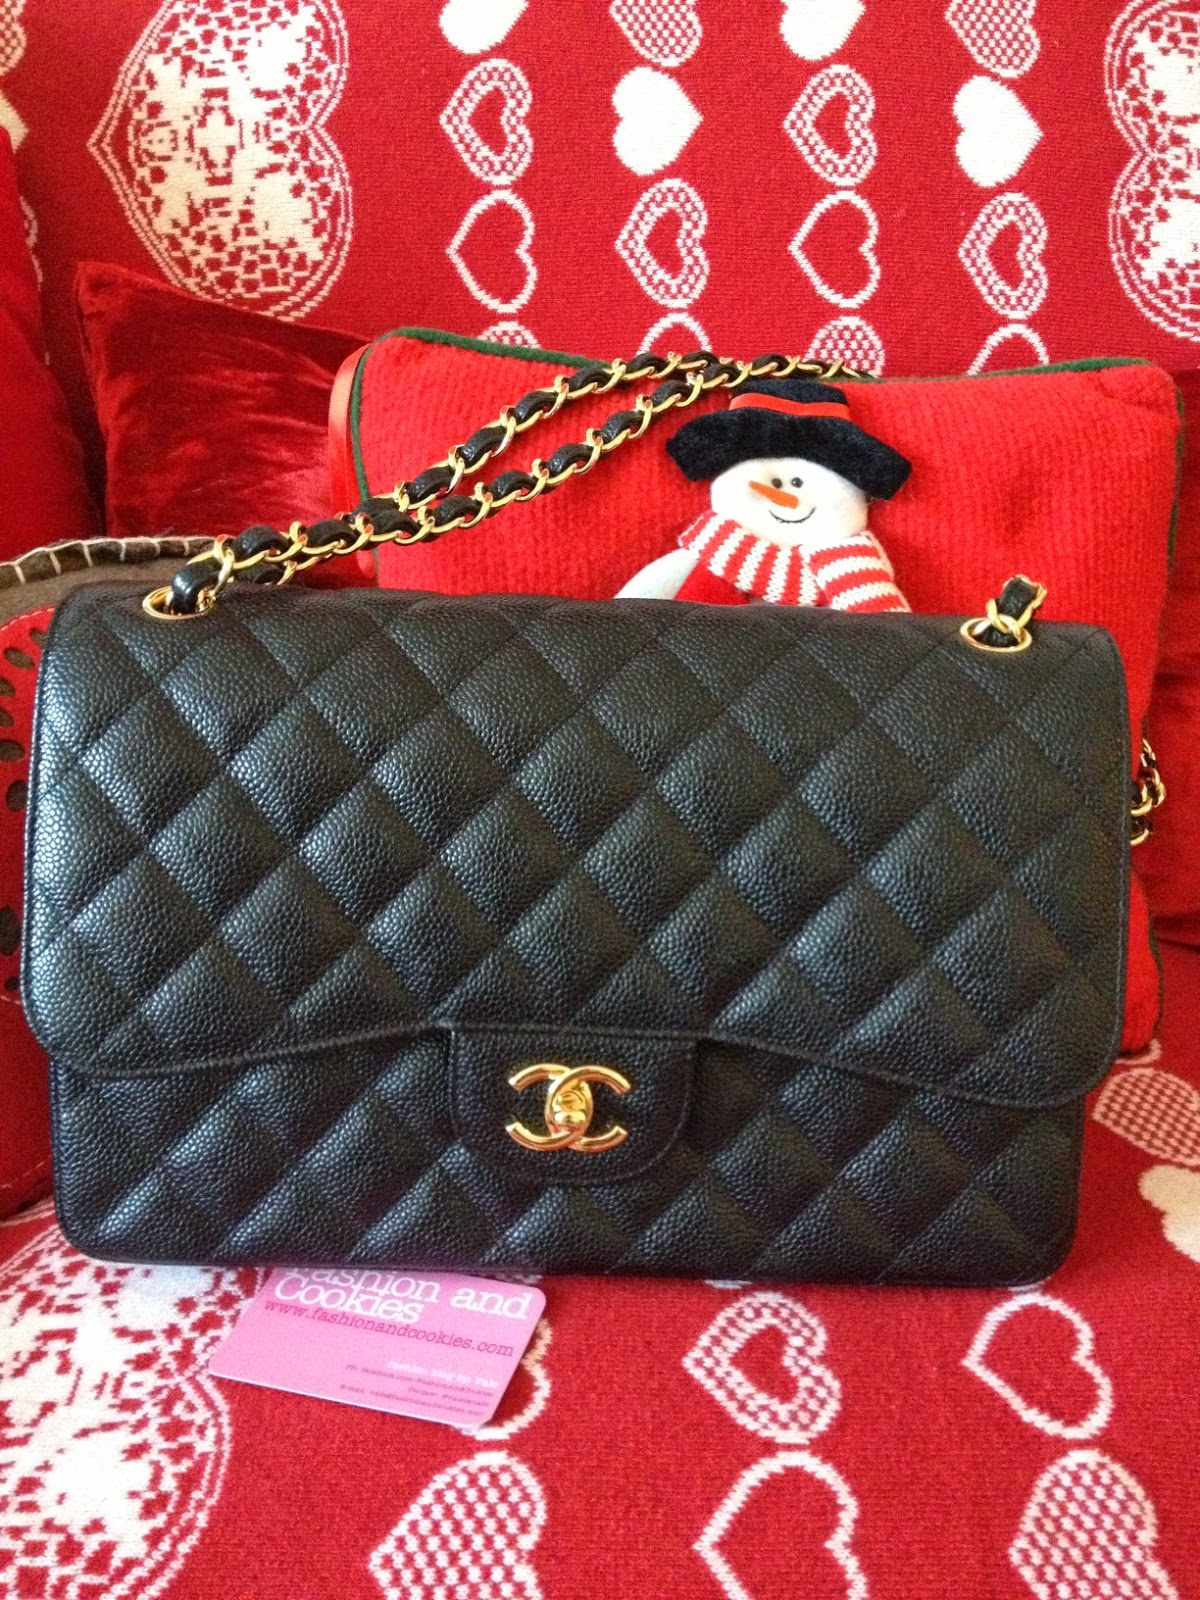 1137af528049 Chanel Classic Flap Unboxing | Unboxing Chanel Boy Bag Large ...